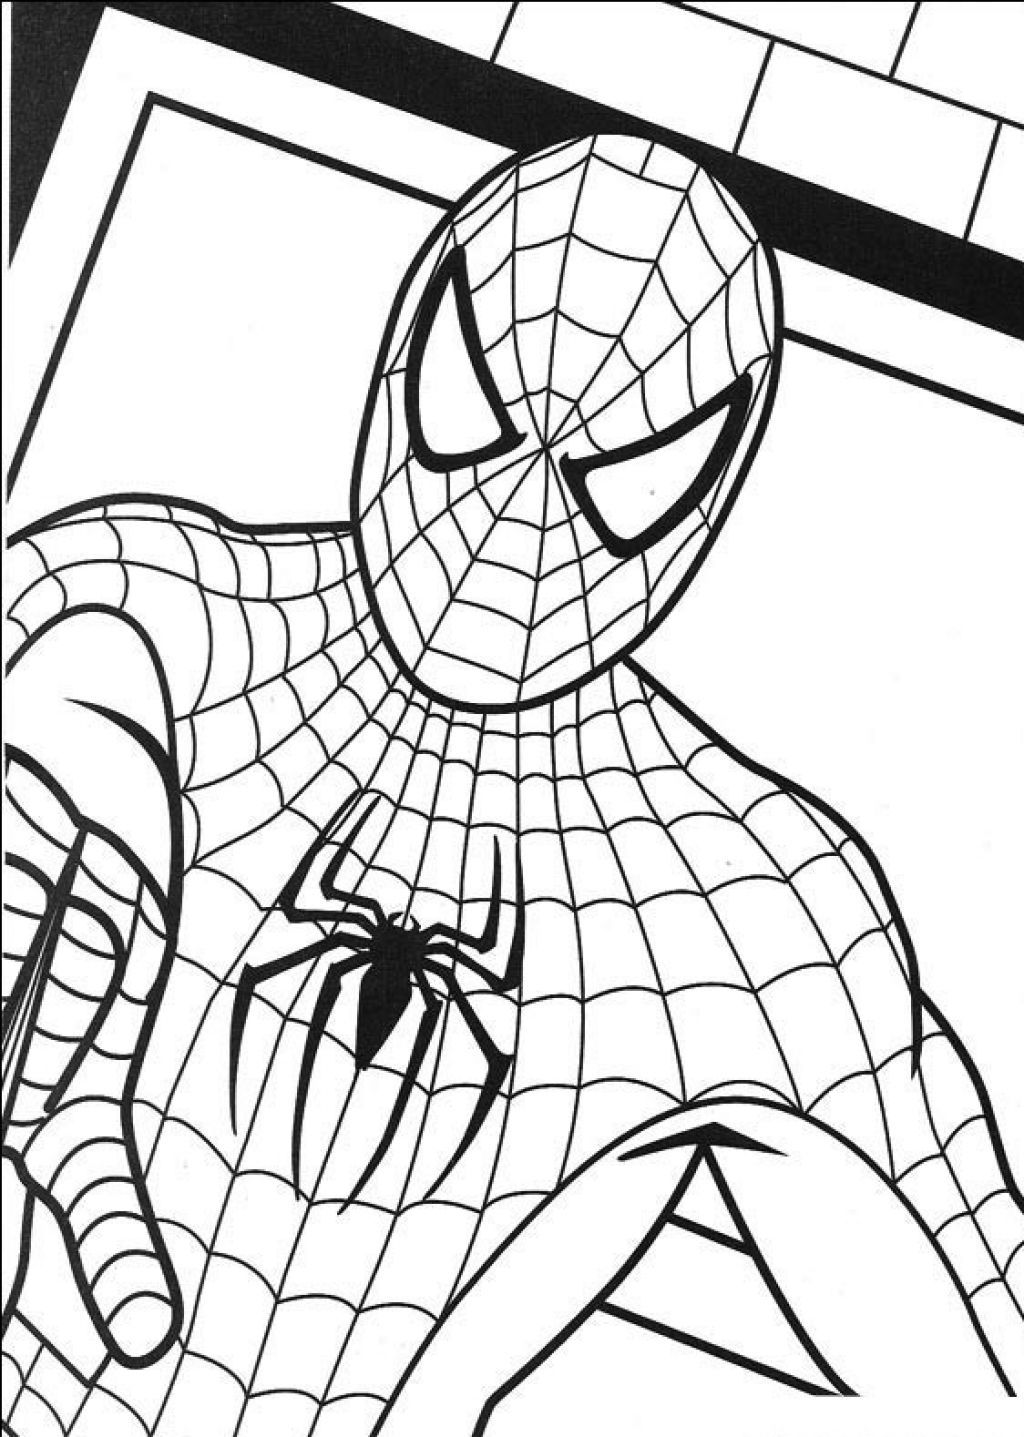 spiderman outline drawing spiderman outline drawing at getdrawings free download drawing outline spiderman